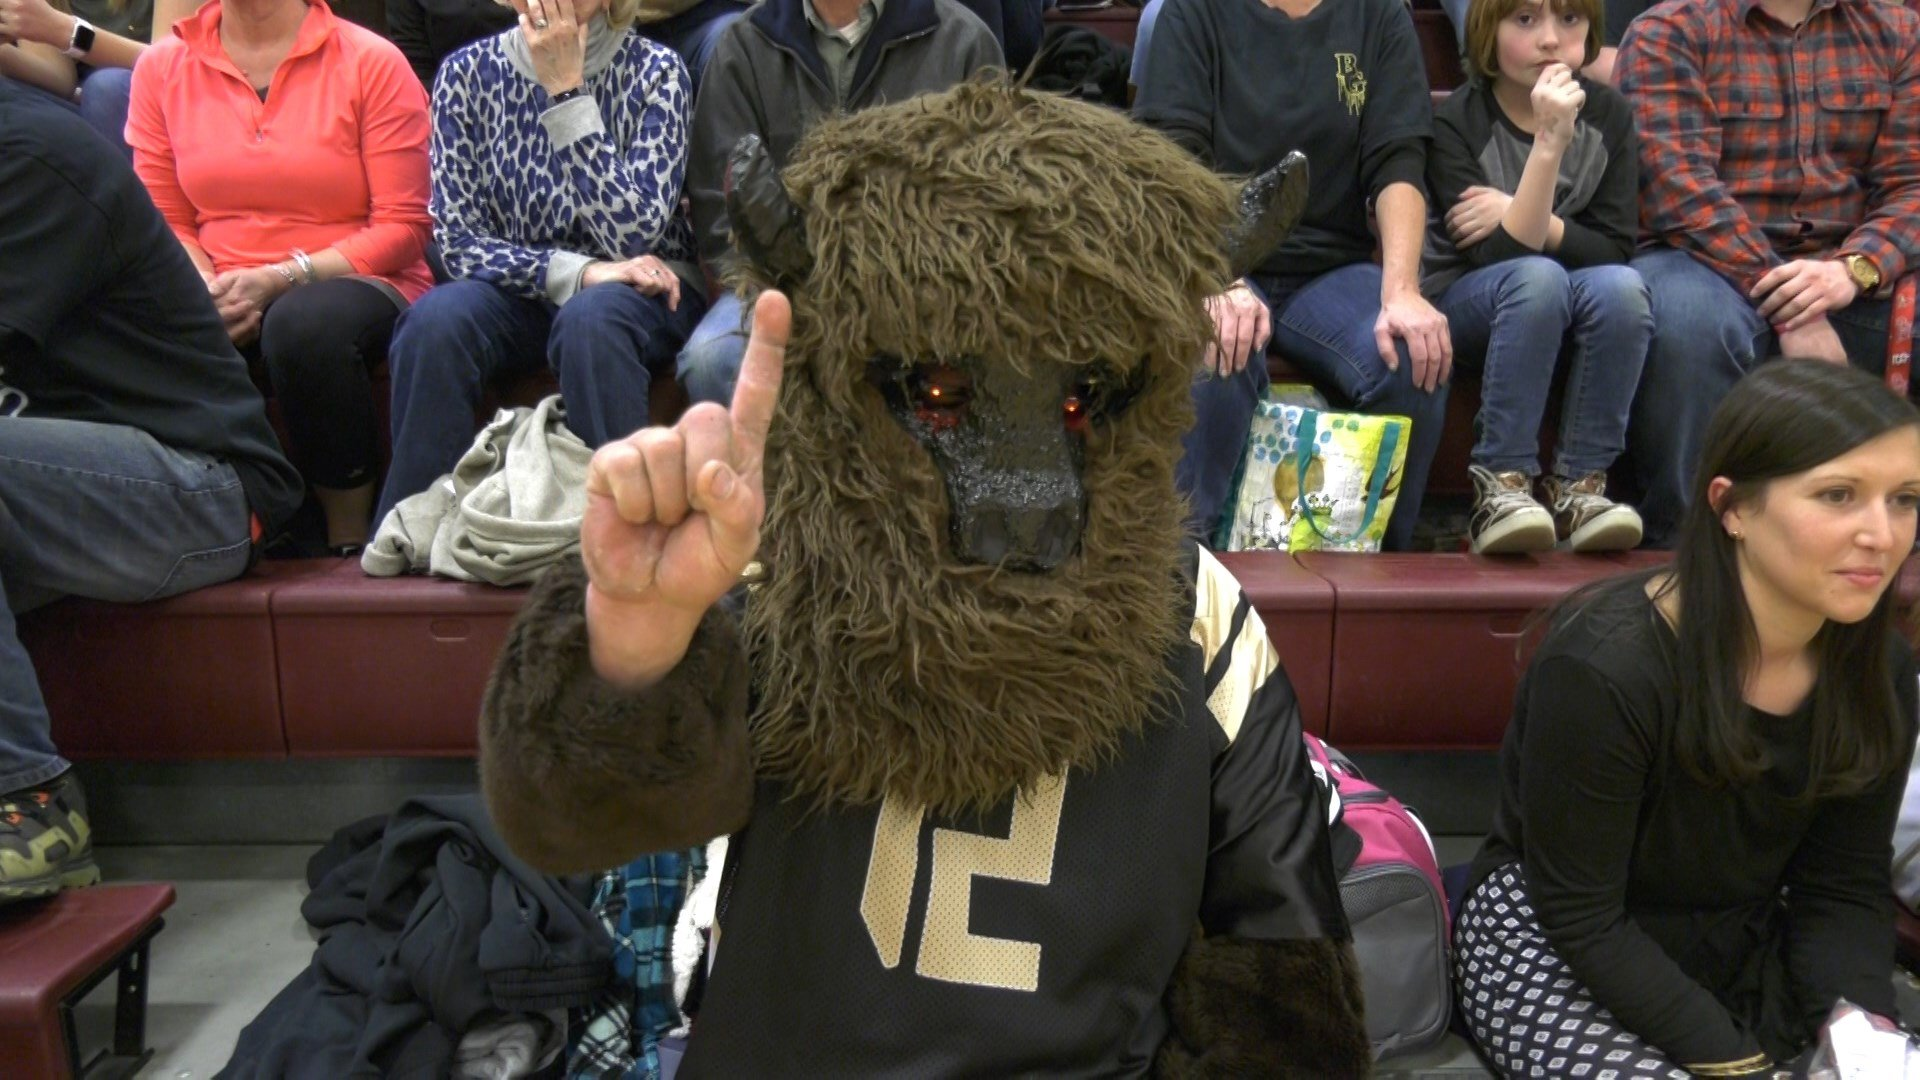 Buffalo Gap girls basketball advanced to the state semifinals with a 63-41 win over Prince Edward County